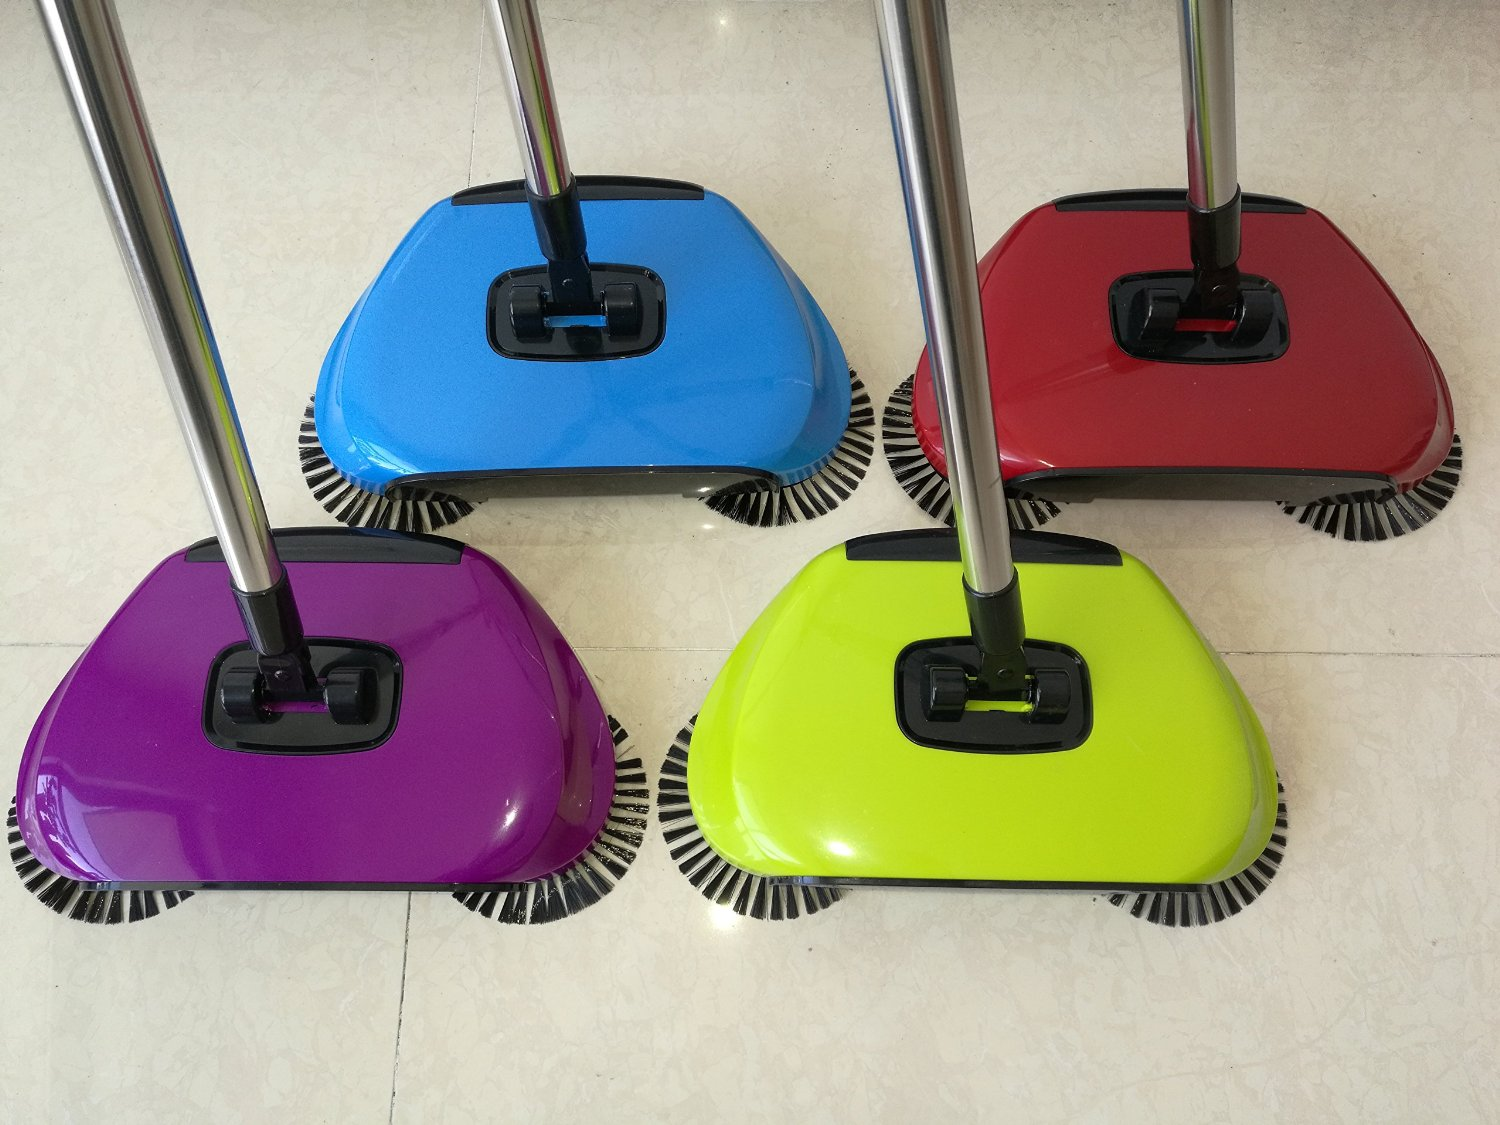 Broom Cleaner Robot Household Cleaning Hand Push Sweeper Broom machine Broom Floor Cleaner Dustpan Combination Package 3 in 1(China (Mainland))